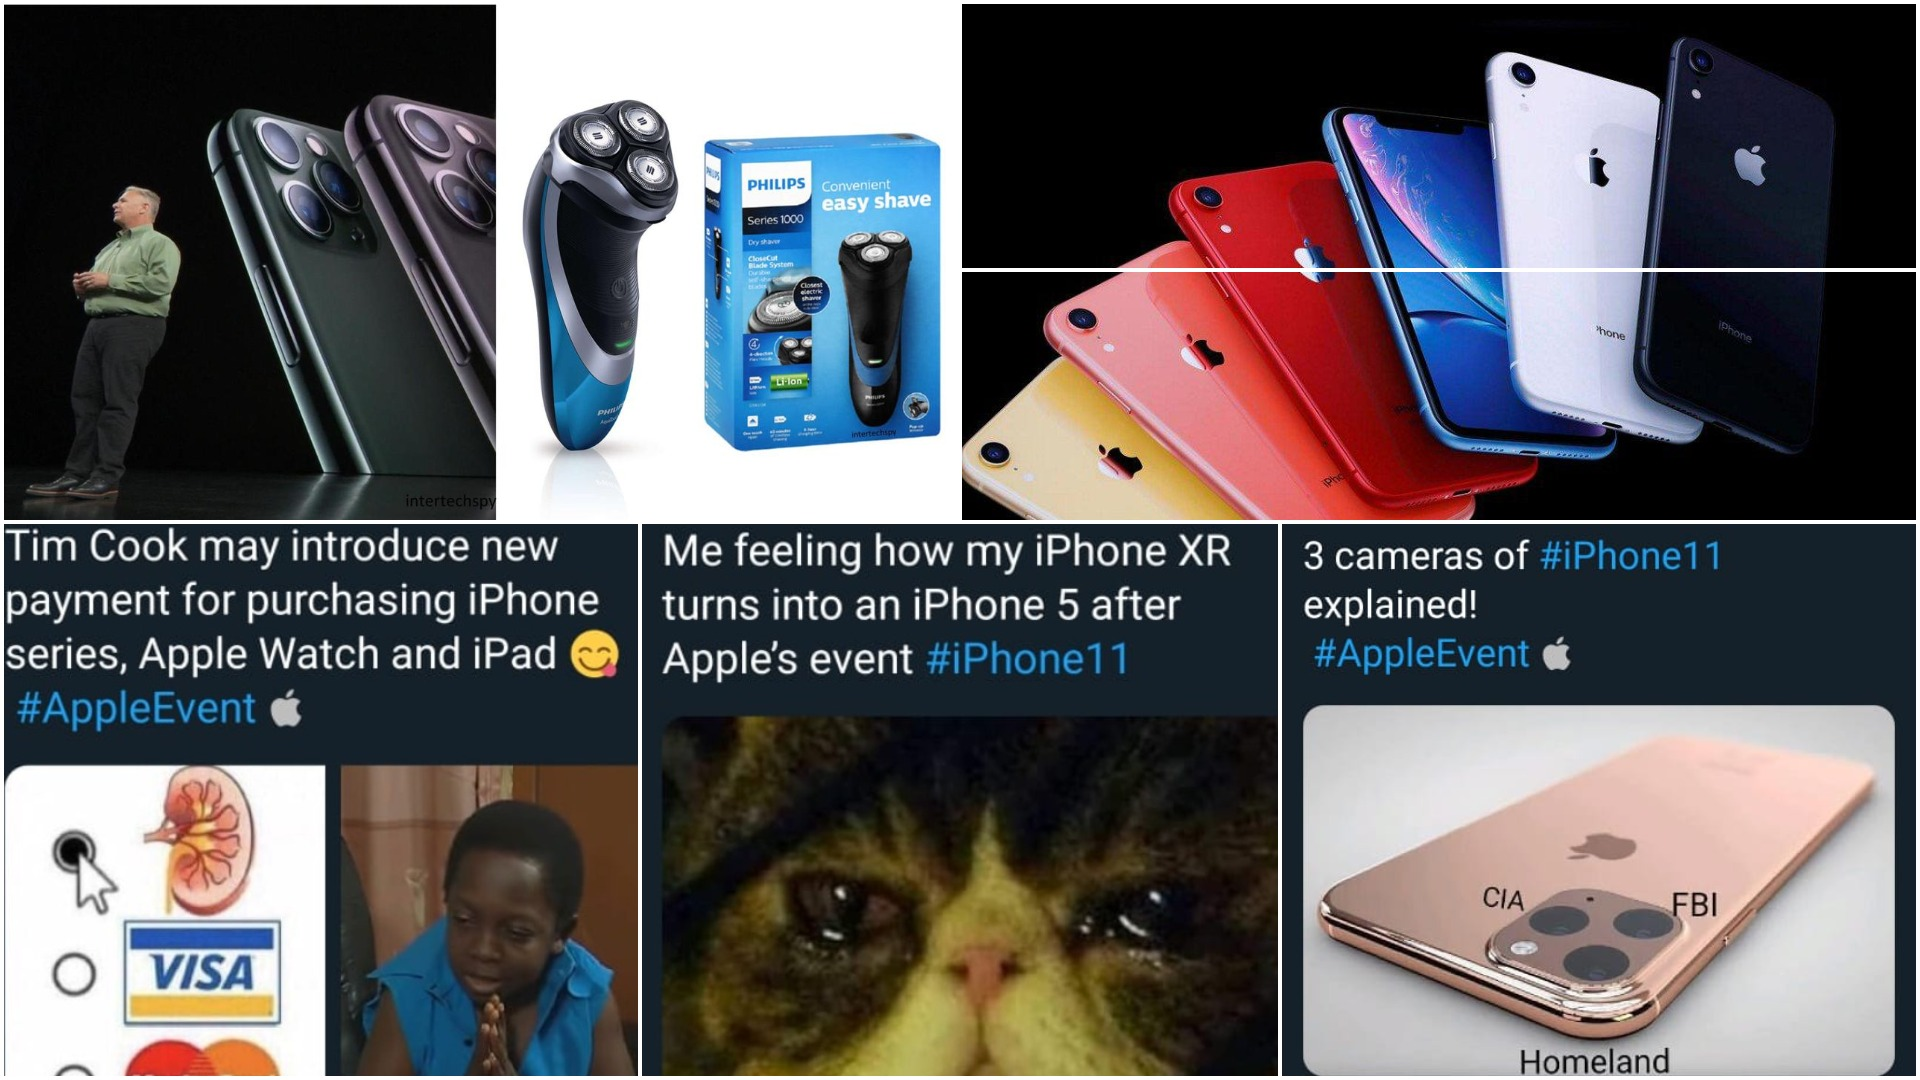 This Camera Brand Stereotypes Meme Is Hilarious And On Point